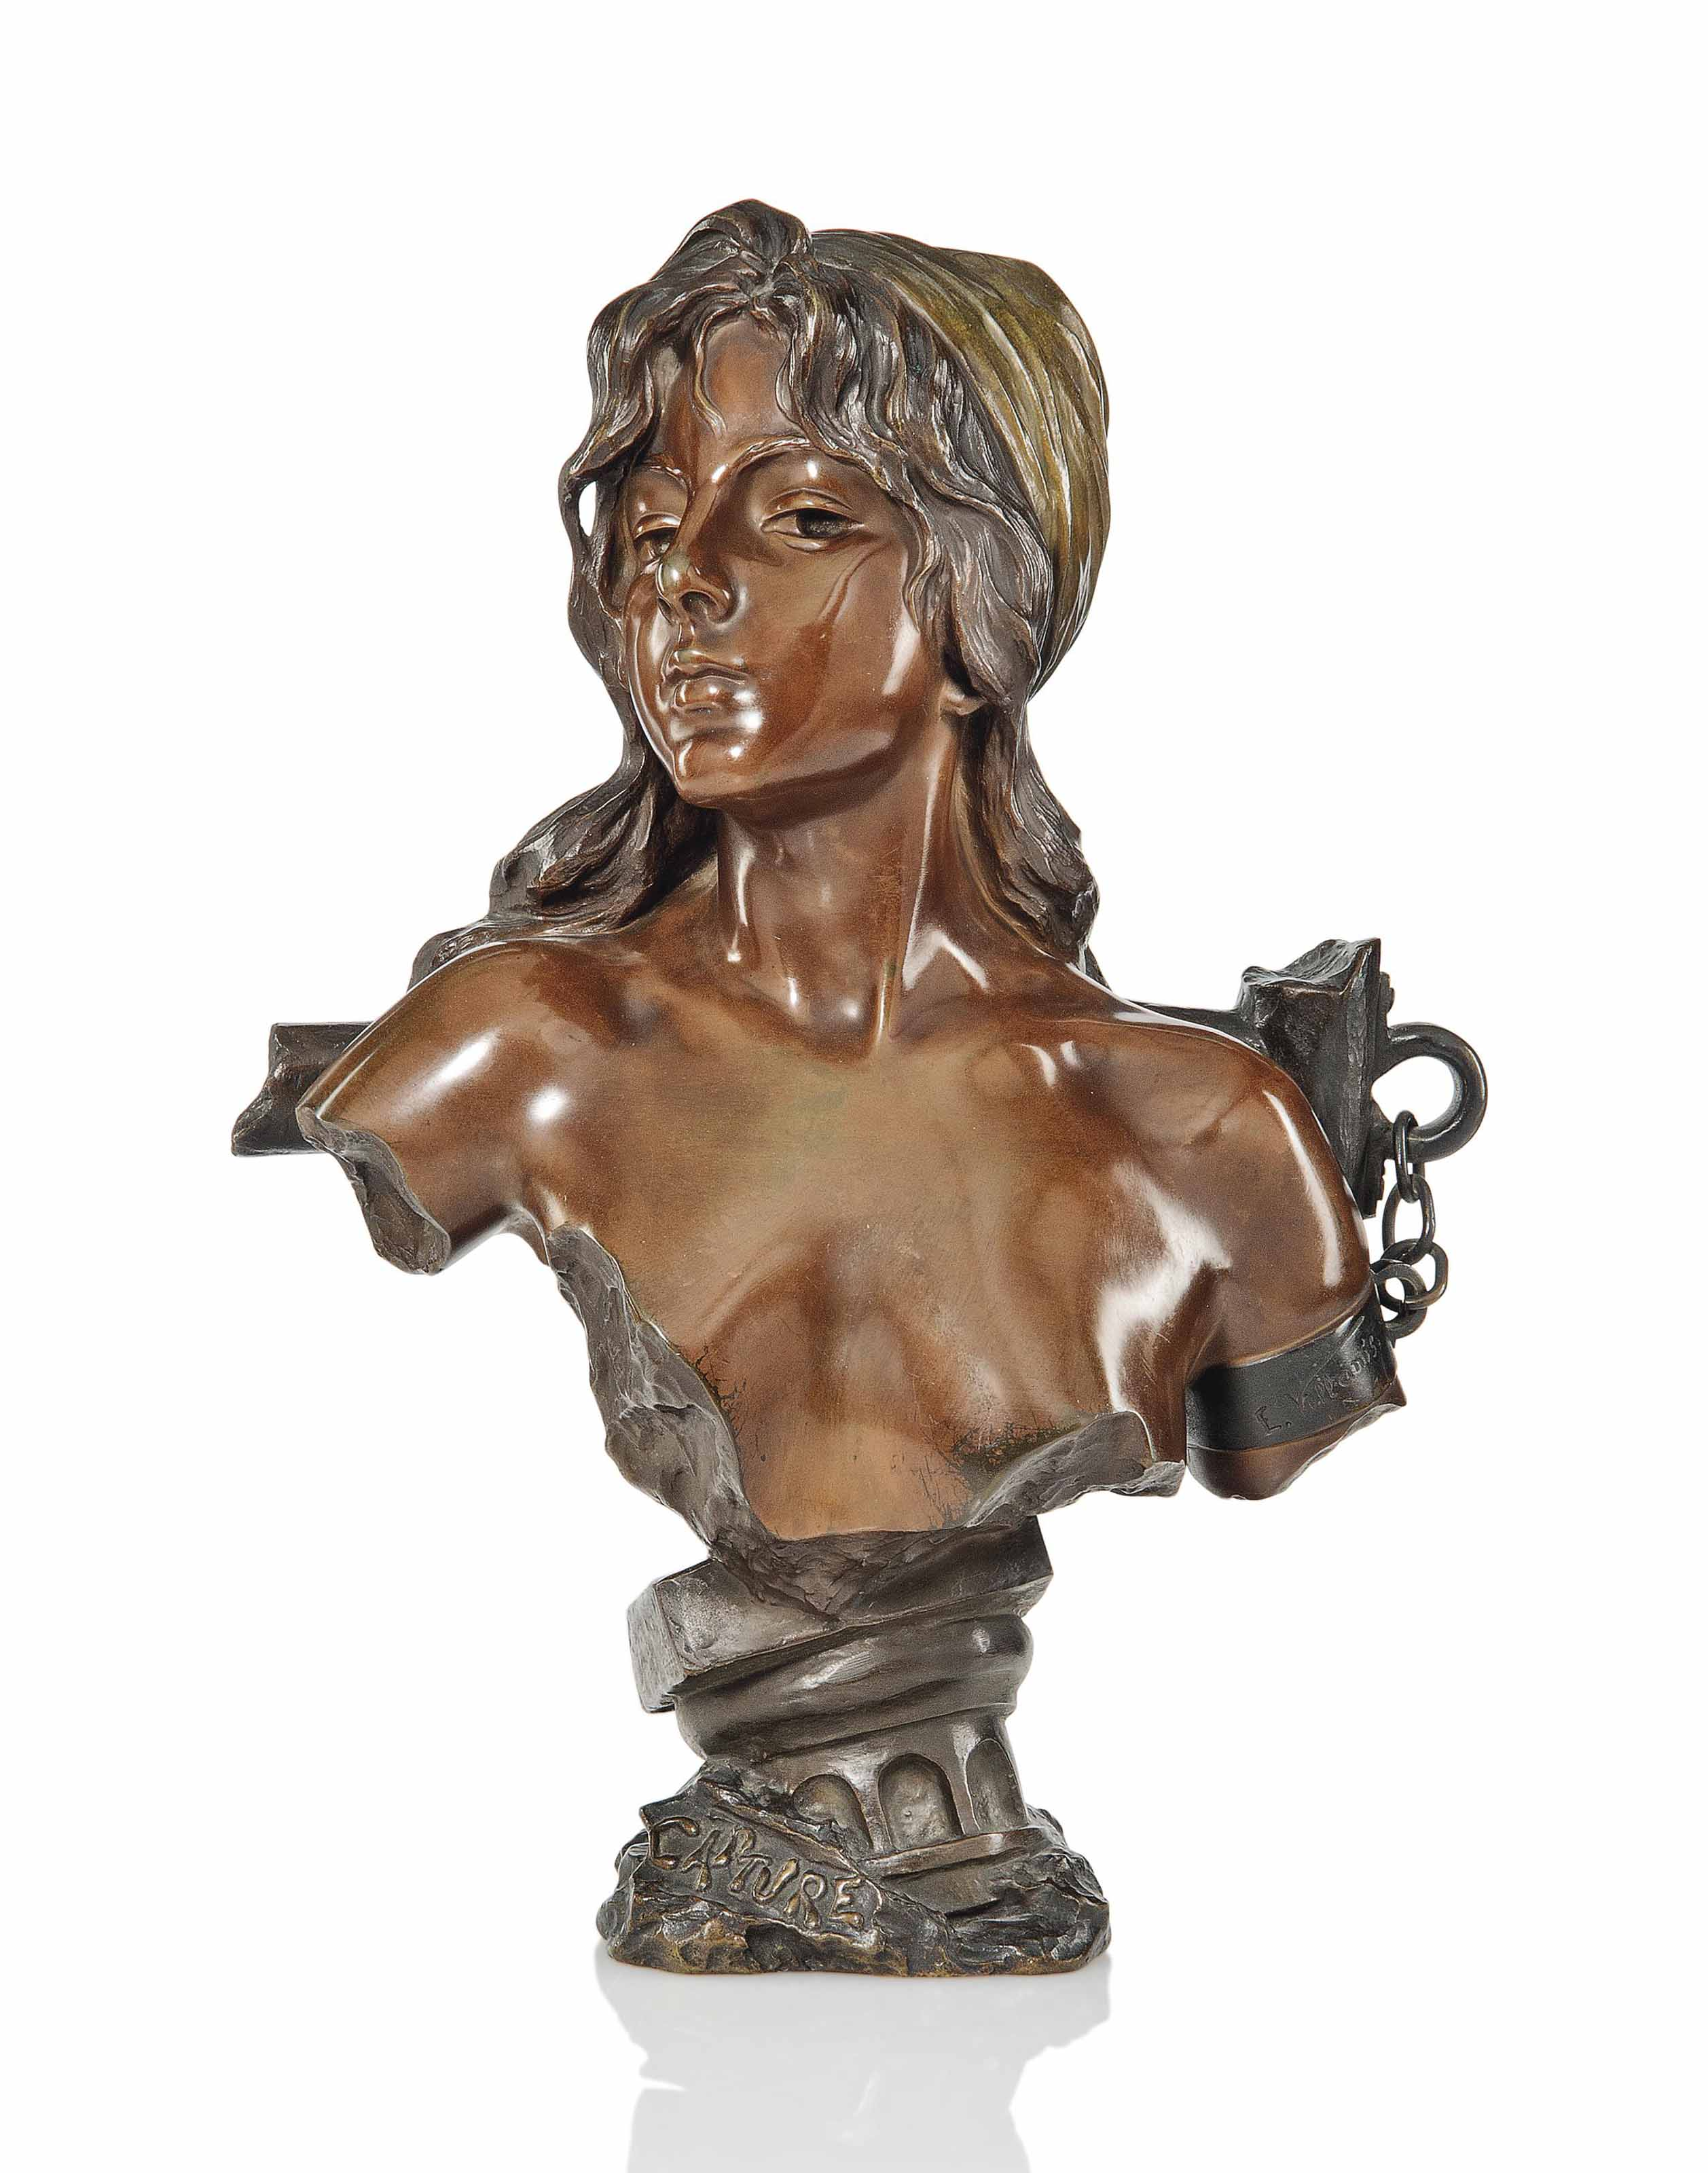 AN EMMANUEL VILLANIS (1858-1914) PATINATED BRONZE BUST